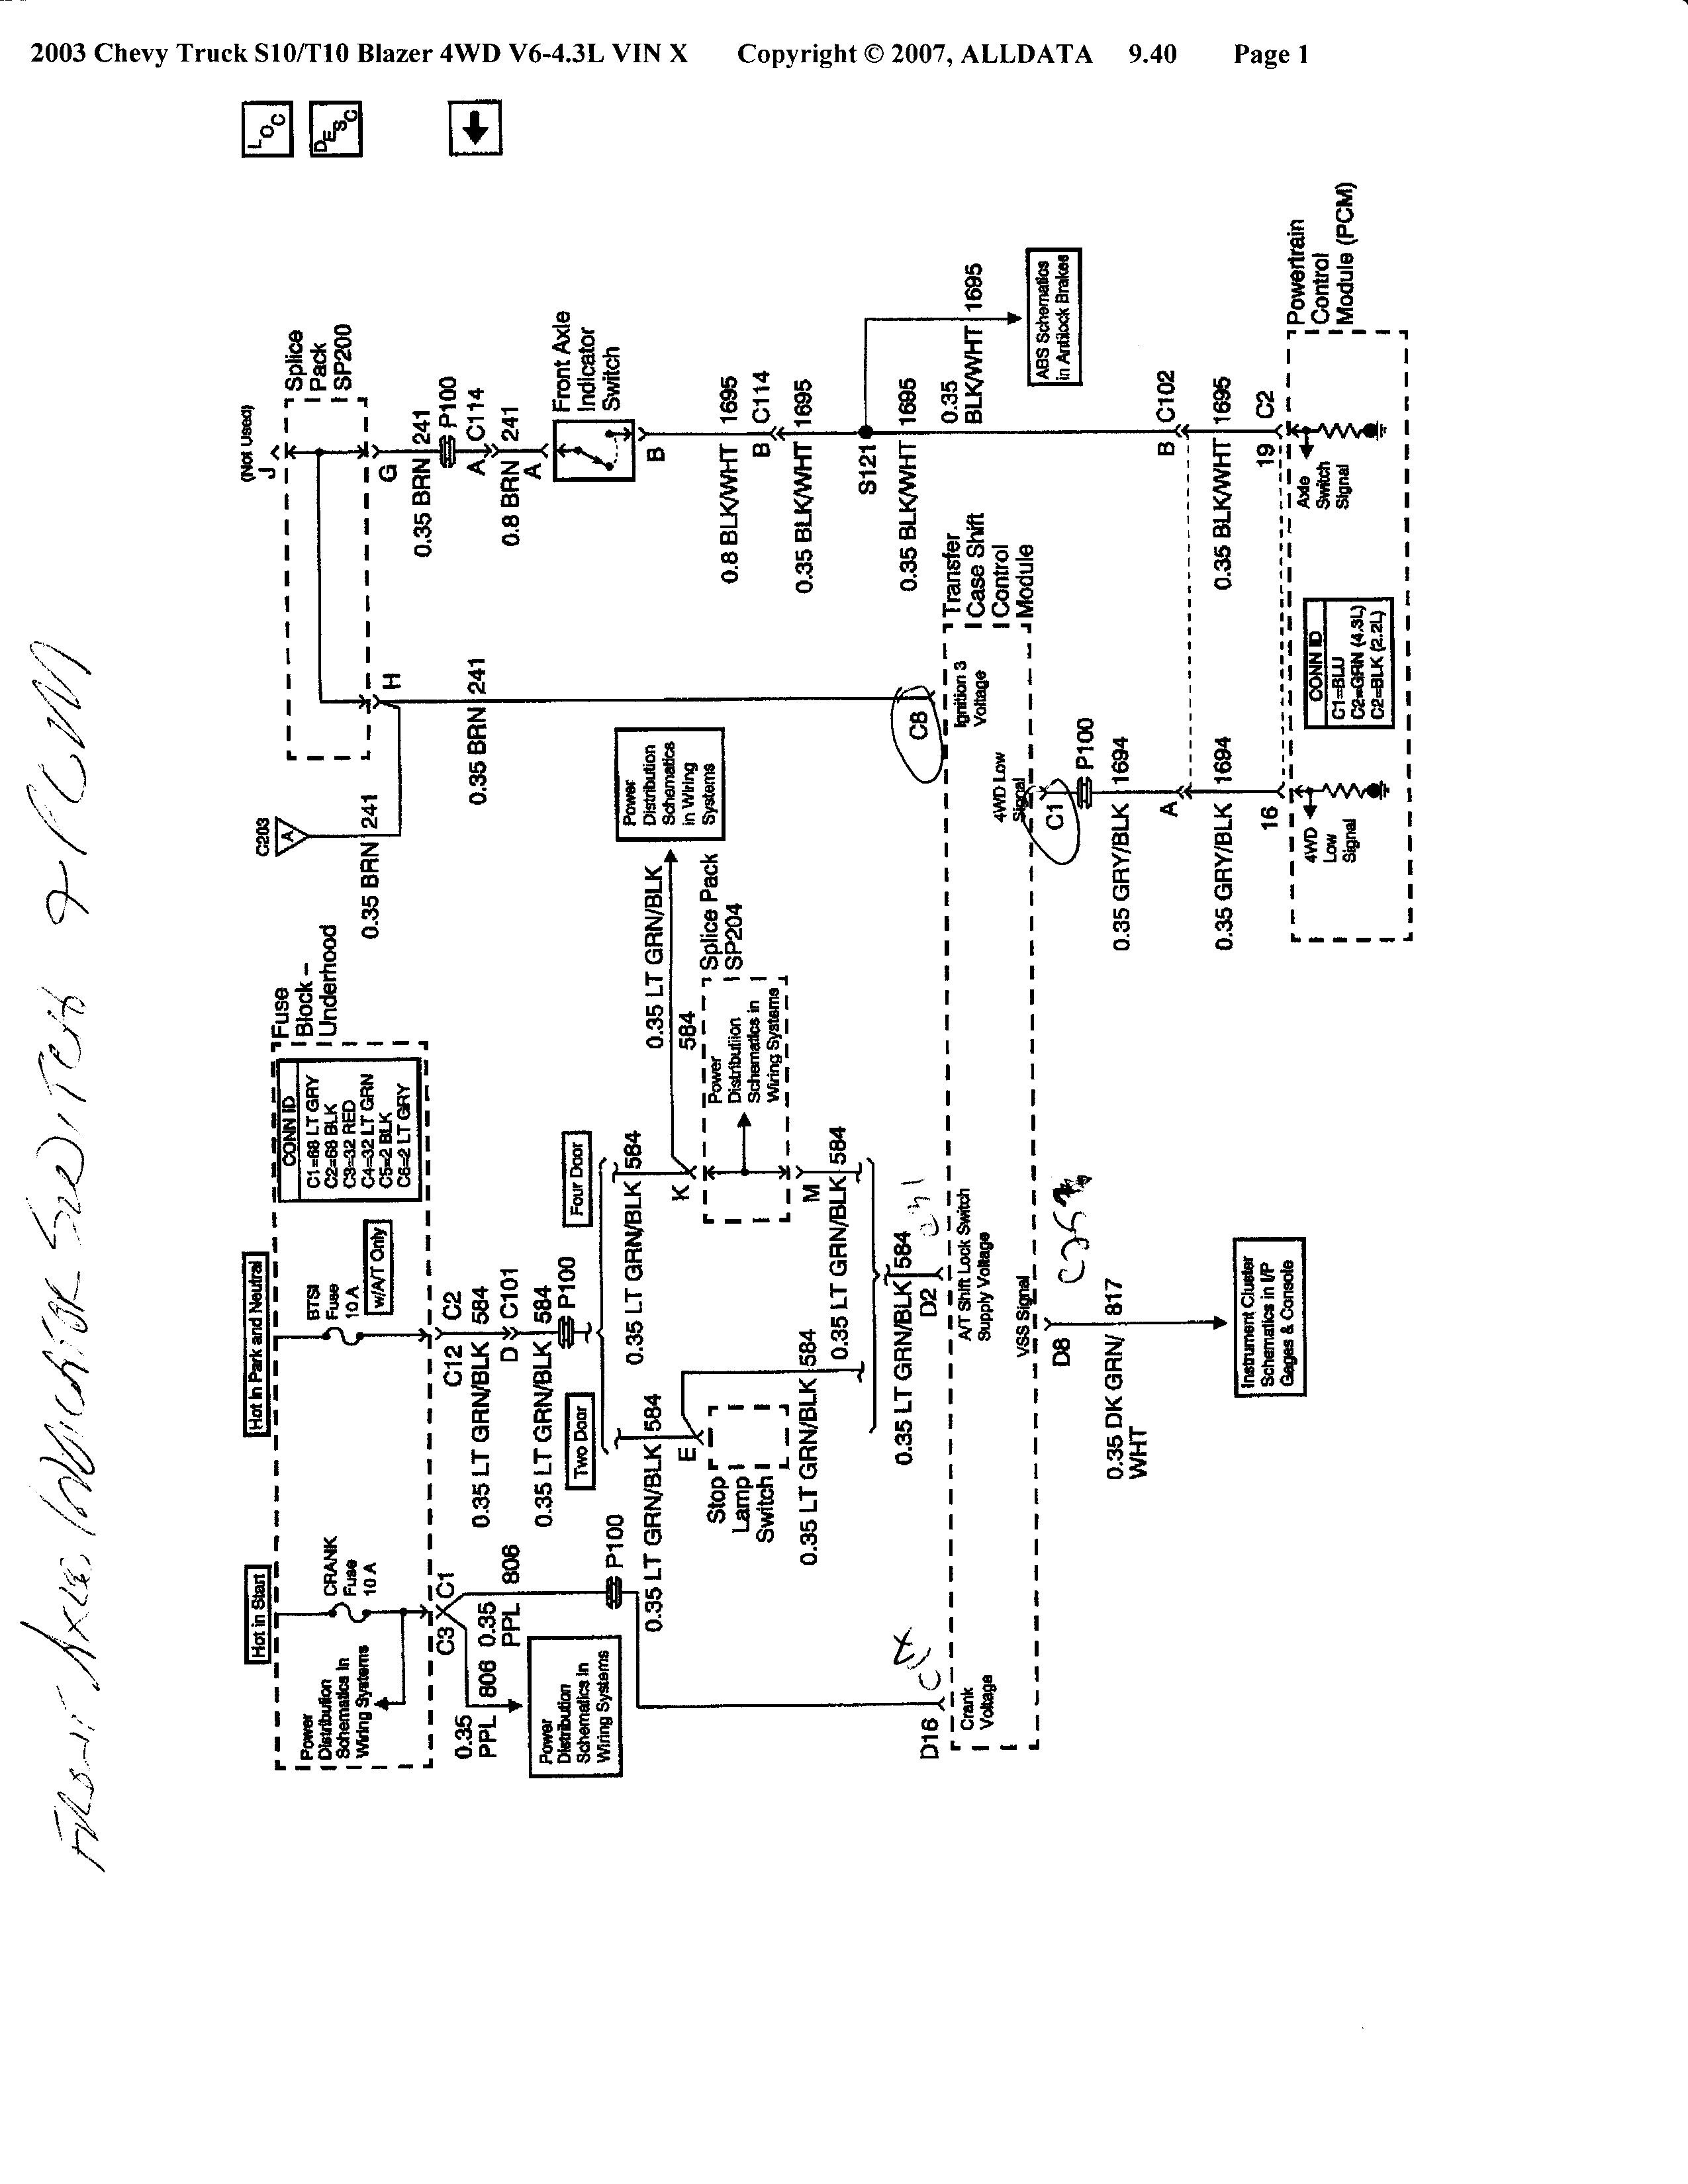 transmission wiring diagram as well 94 chevy s10 wiring diagram